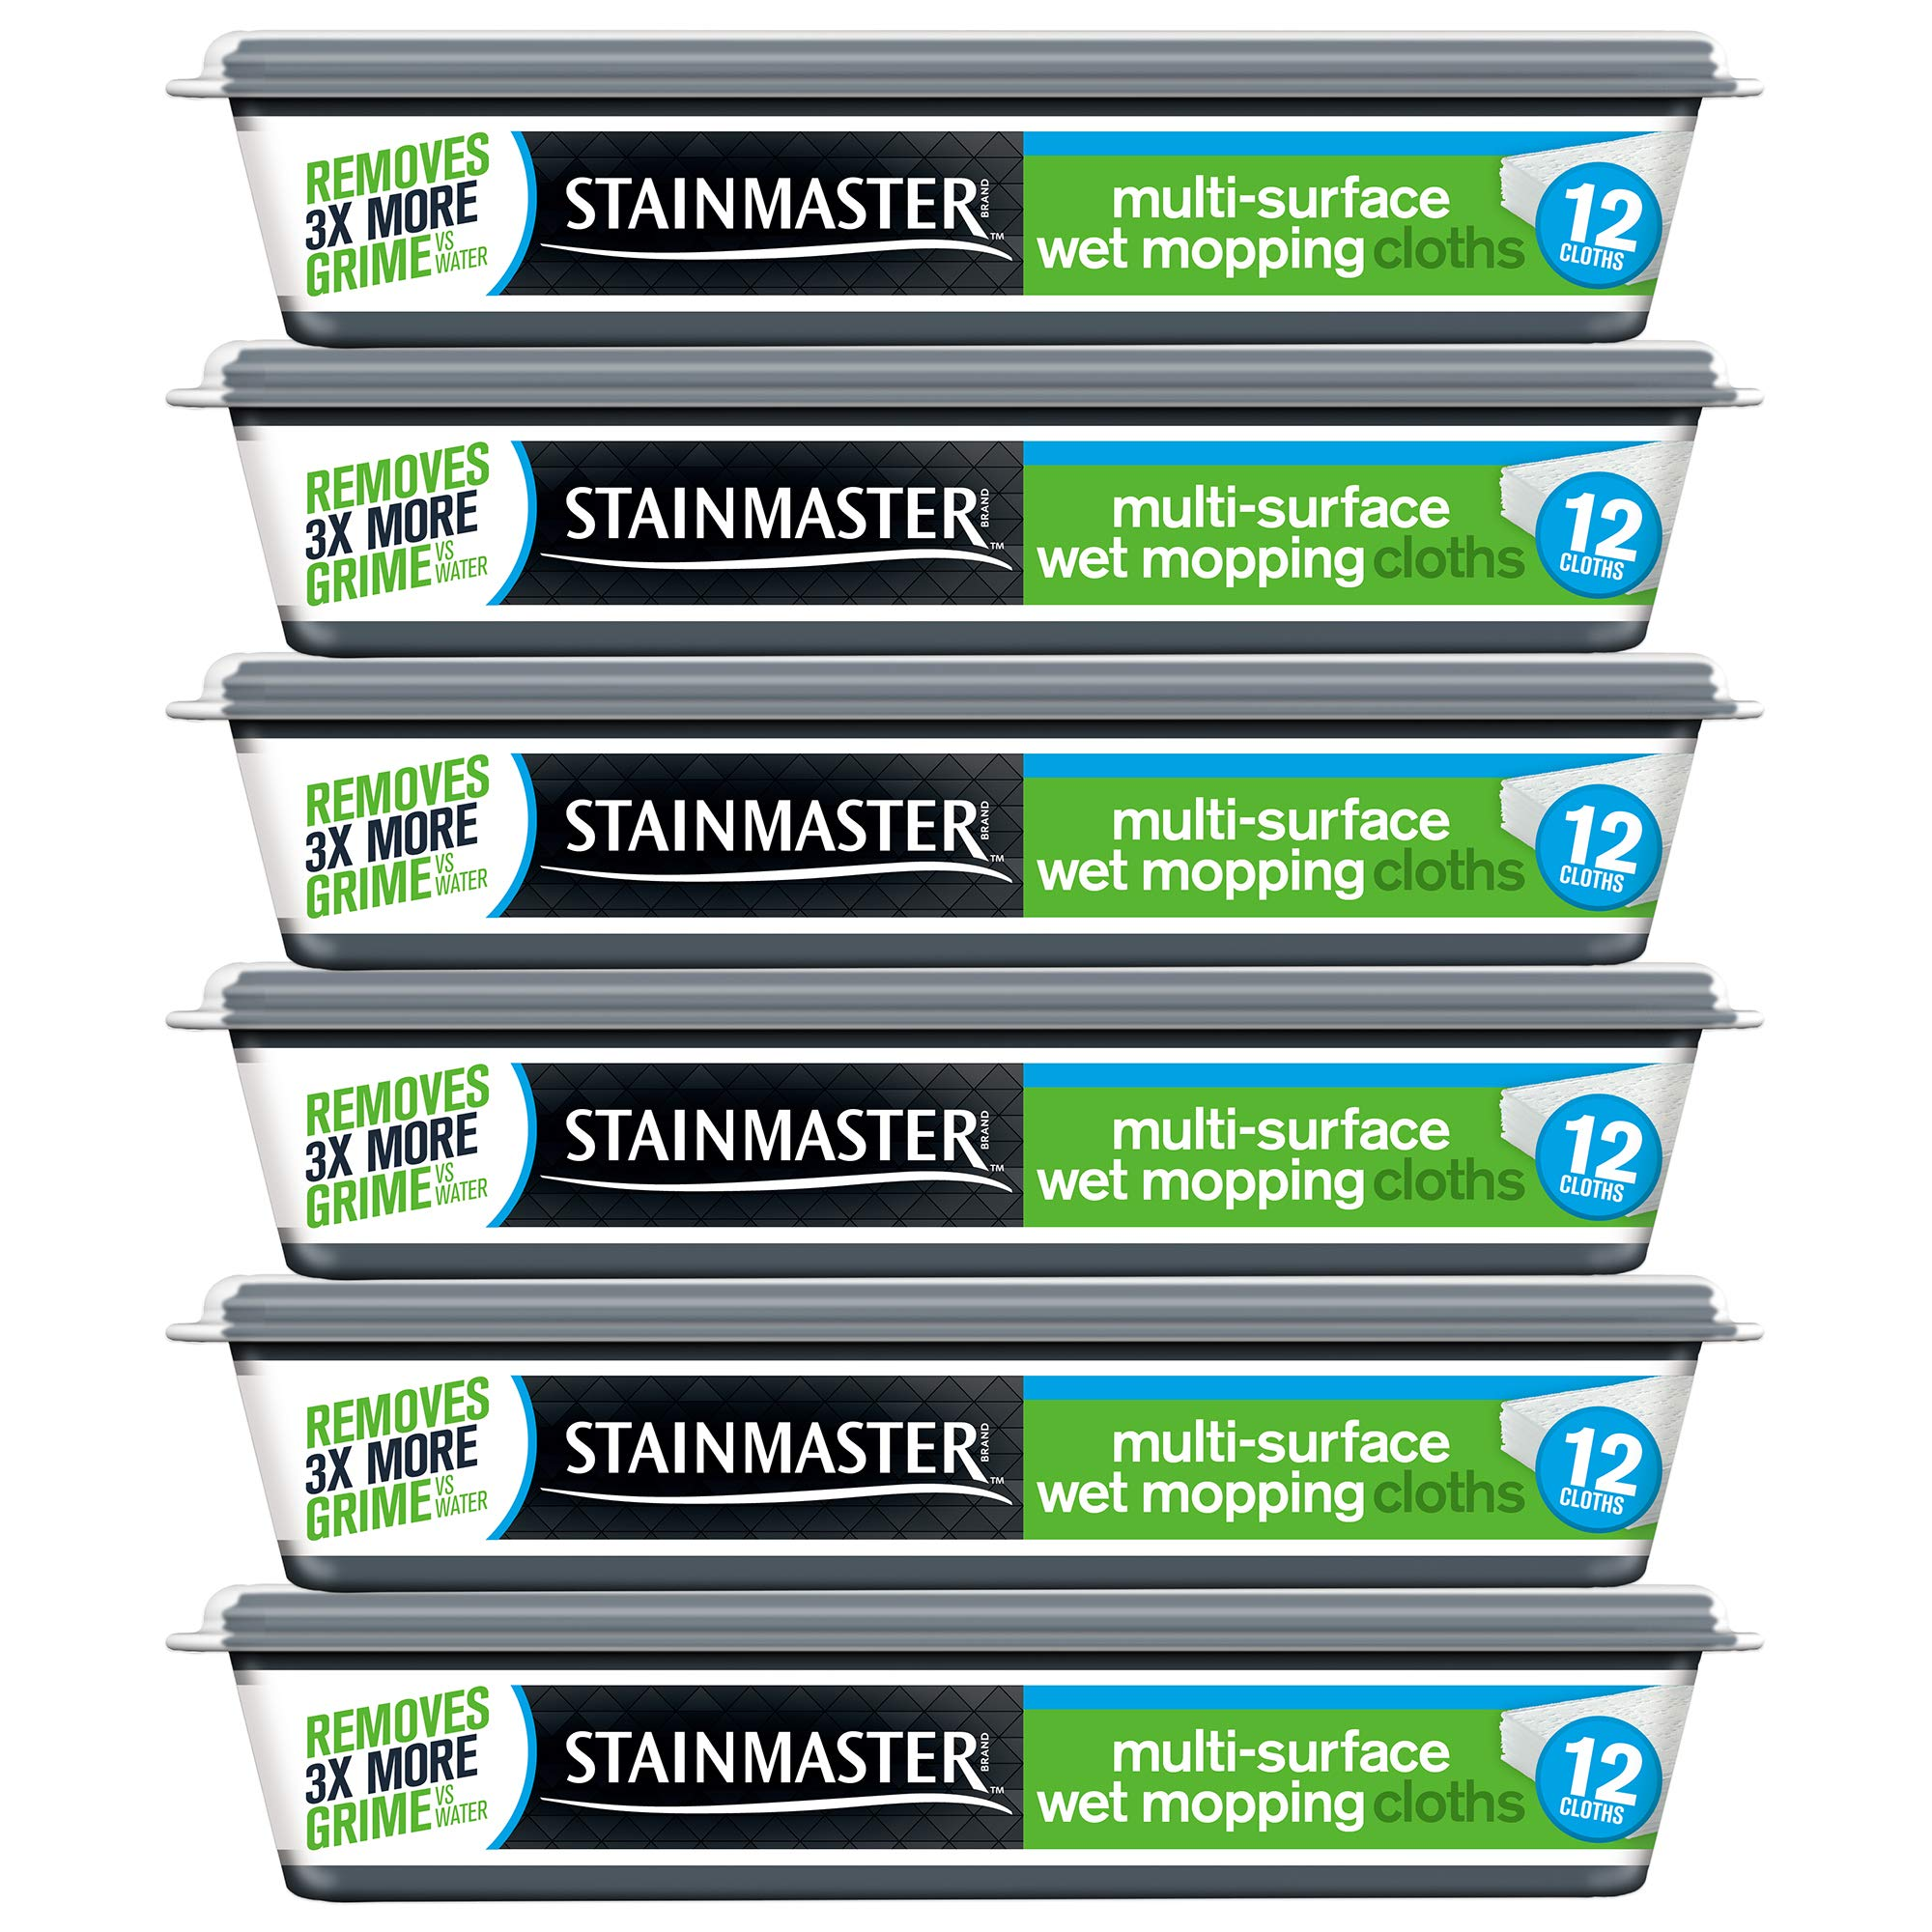 STAINMASTER Wet Mopping Cloths, 72 Count, 6 Packs of 12 Mopping Cloths